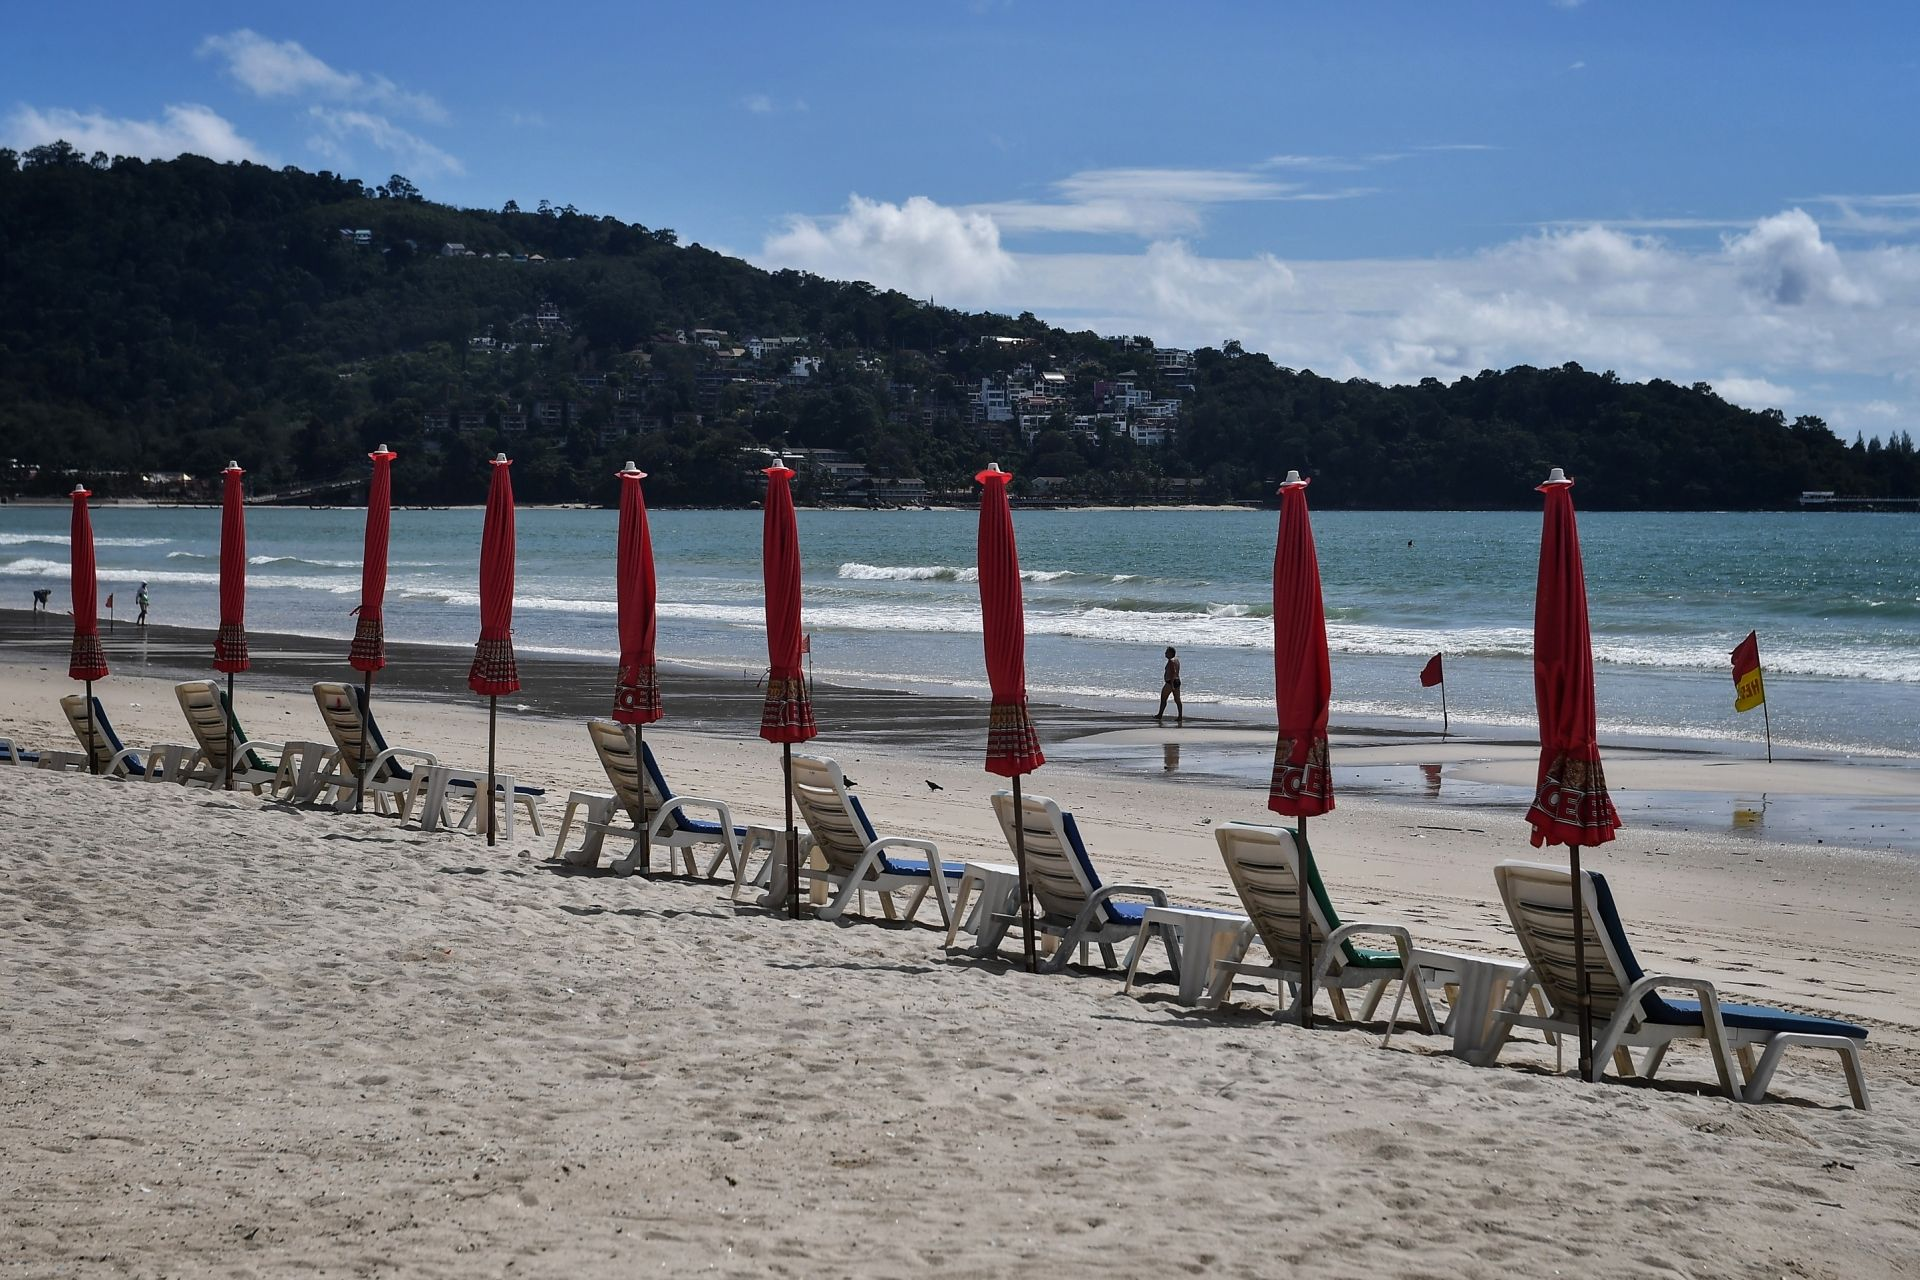 A lone tourist walks past deck chairs along an almost-empty Patong beach in Phuket on October 1, 2020, which has seen a lack of tourists due to ongoing restrictions relating to the COVID-19 novel coronavirus. (Photo by Lillian SUWANRUMPHA / AFP)